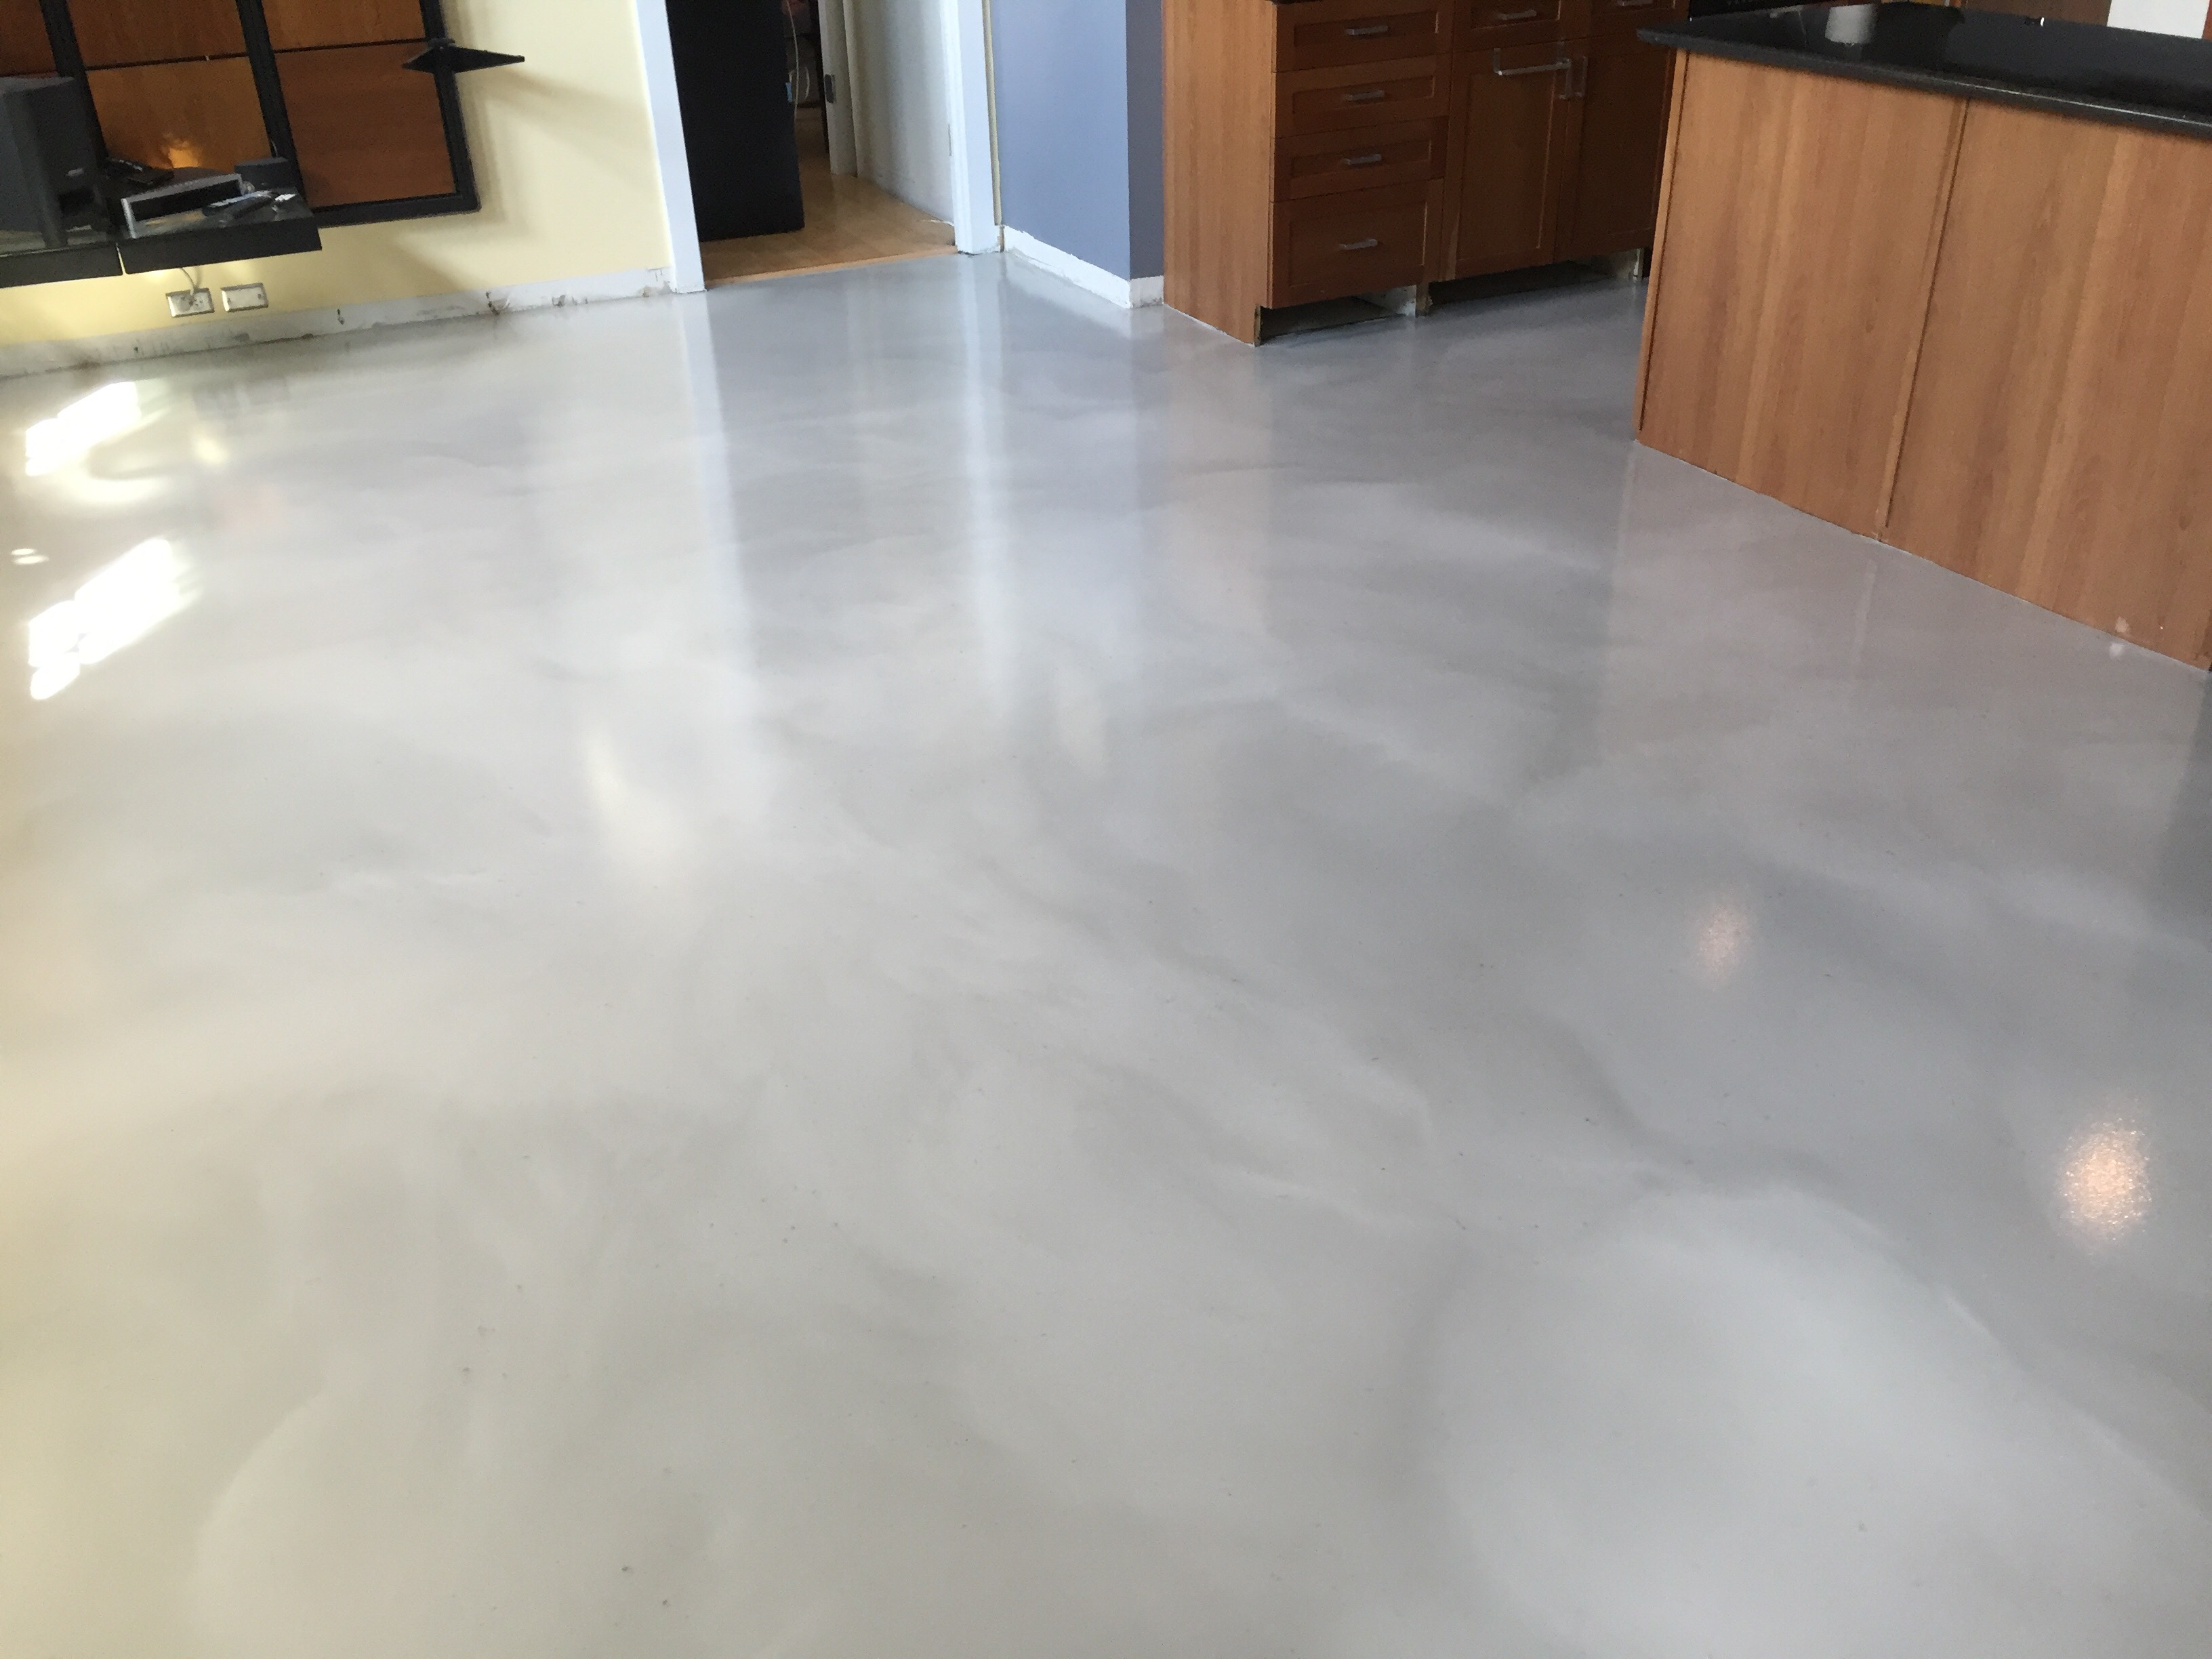 Metallic epoxy floor restoration in washington dc for Epoxy flooring